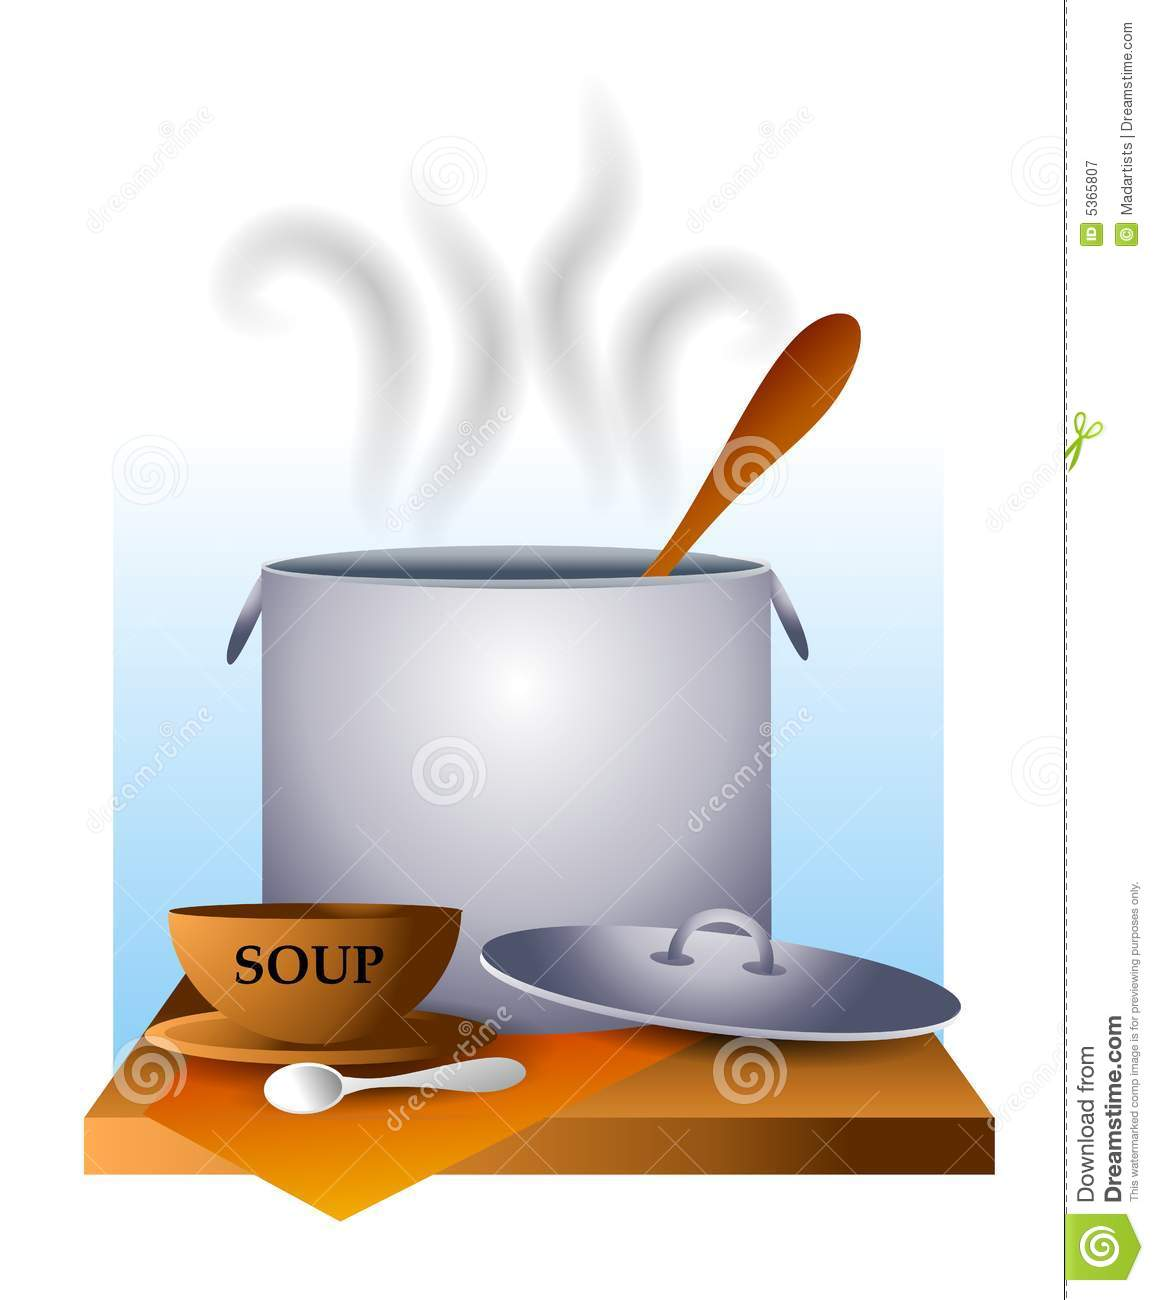 Soup Kitchen Pot and Bowl